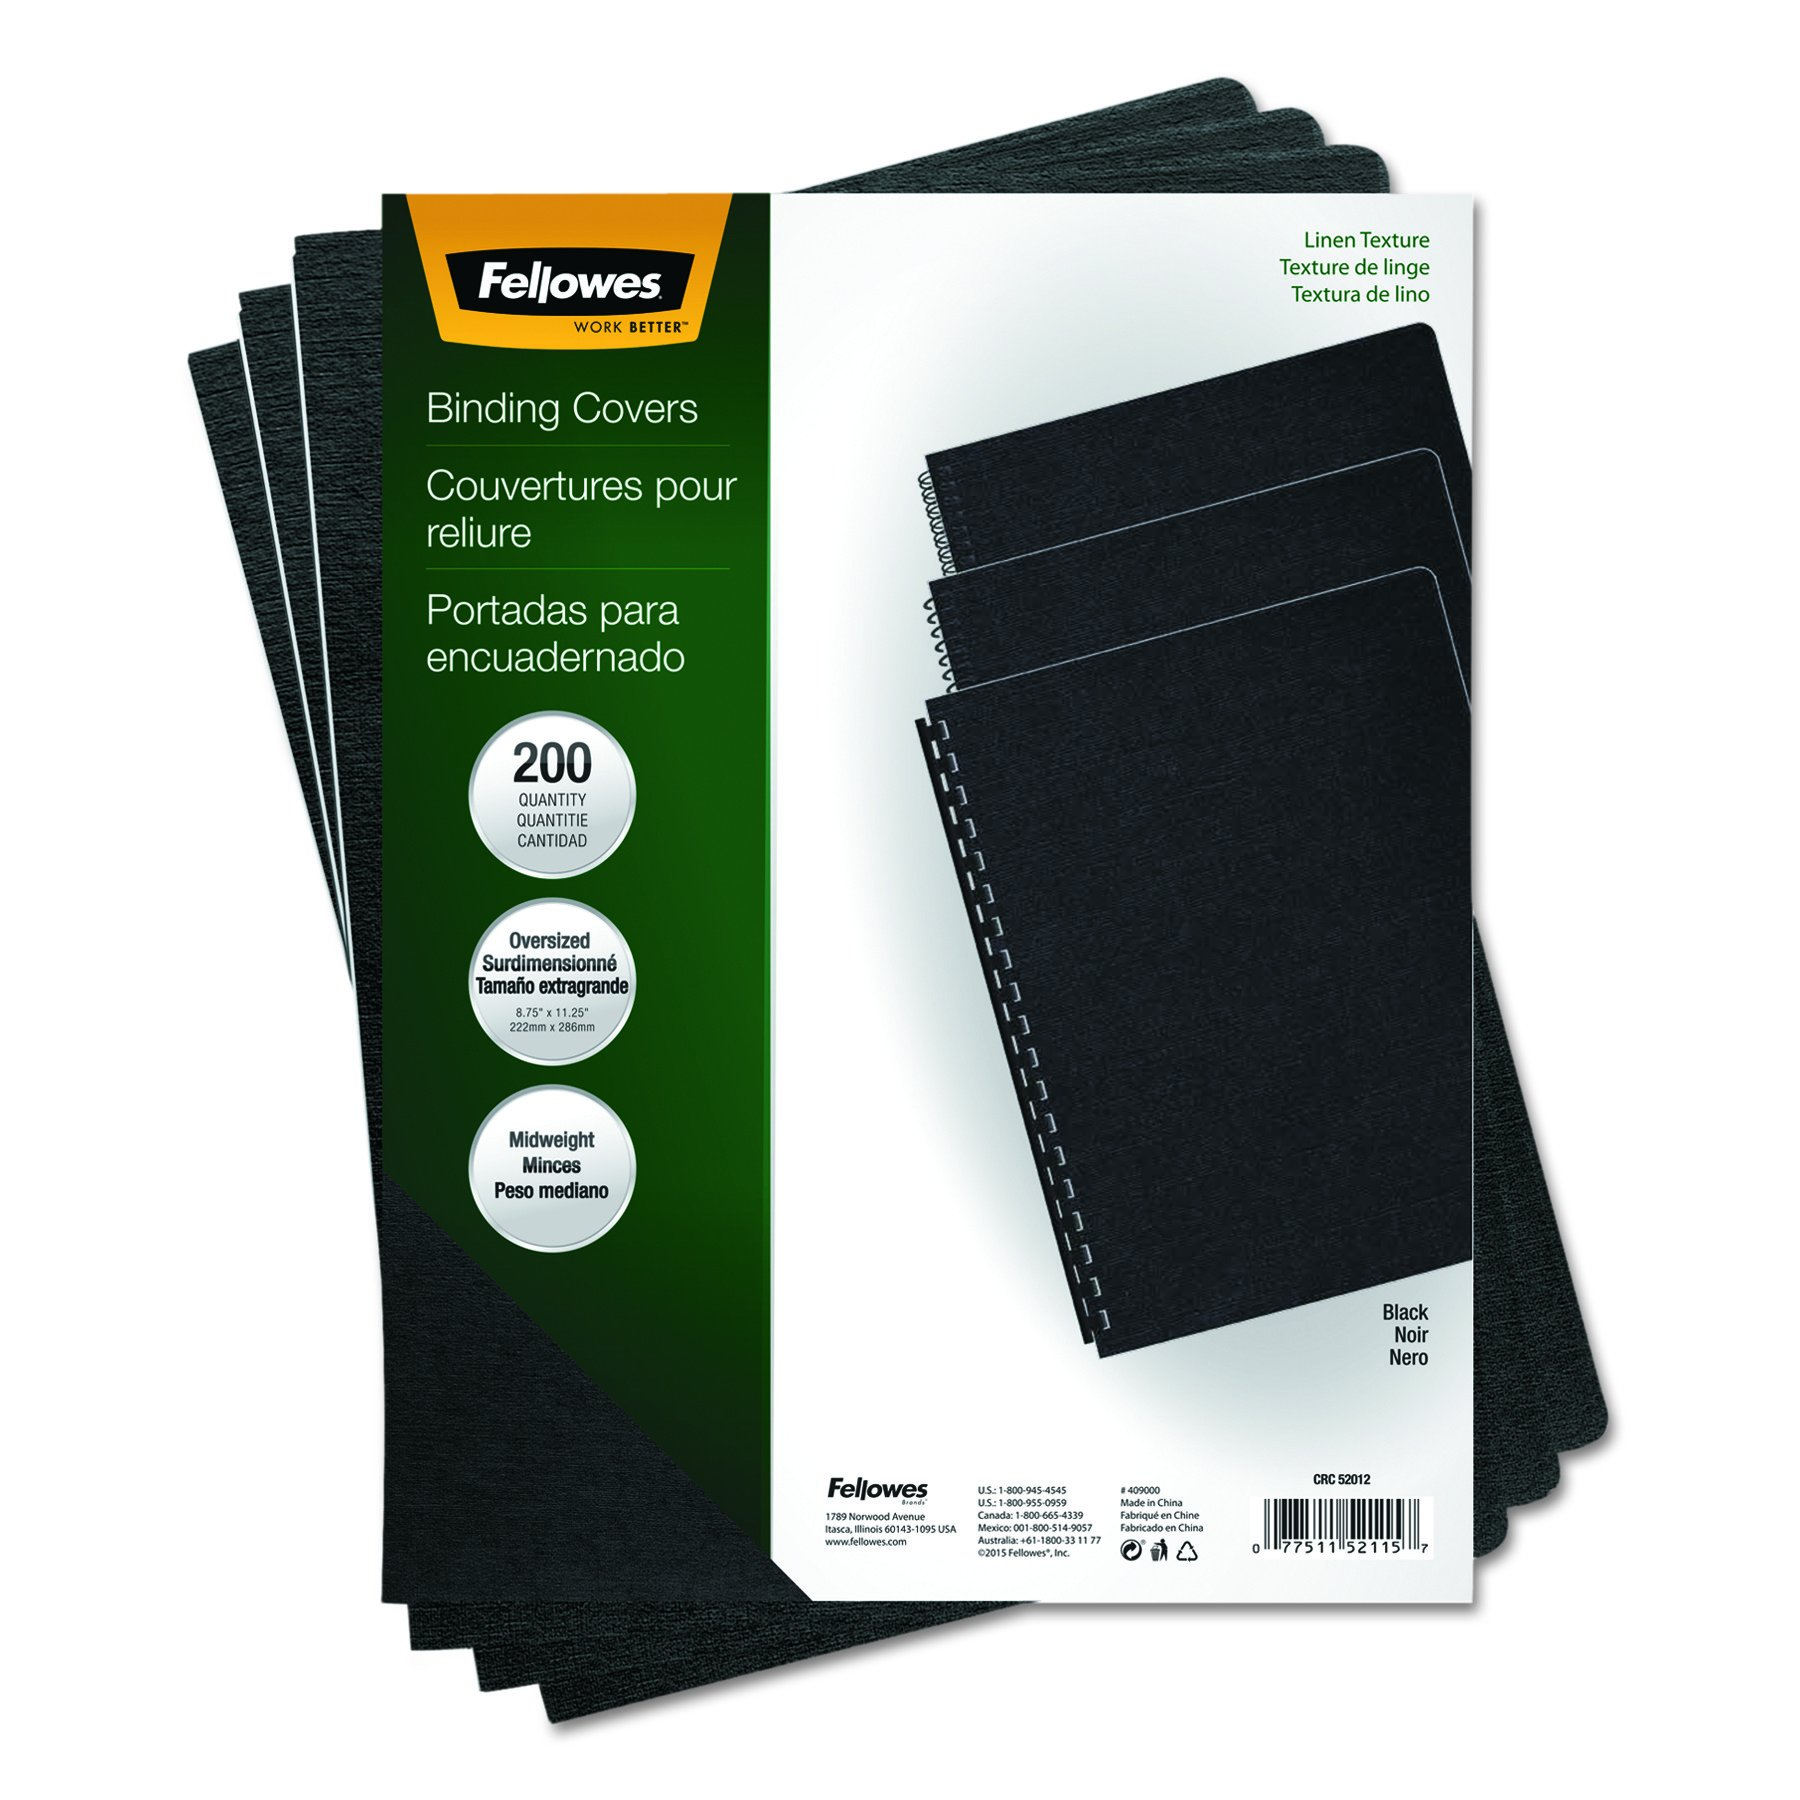 Fellowes 52115 Linen Texture Binding System Covers, 11-1/4 x 8-3/4, Black (Pack of 200) by Fellowes (Image #5)